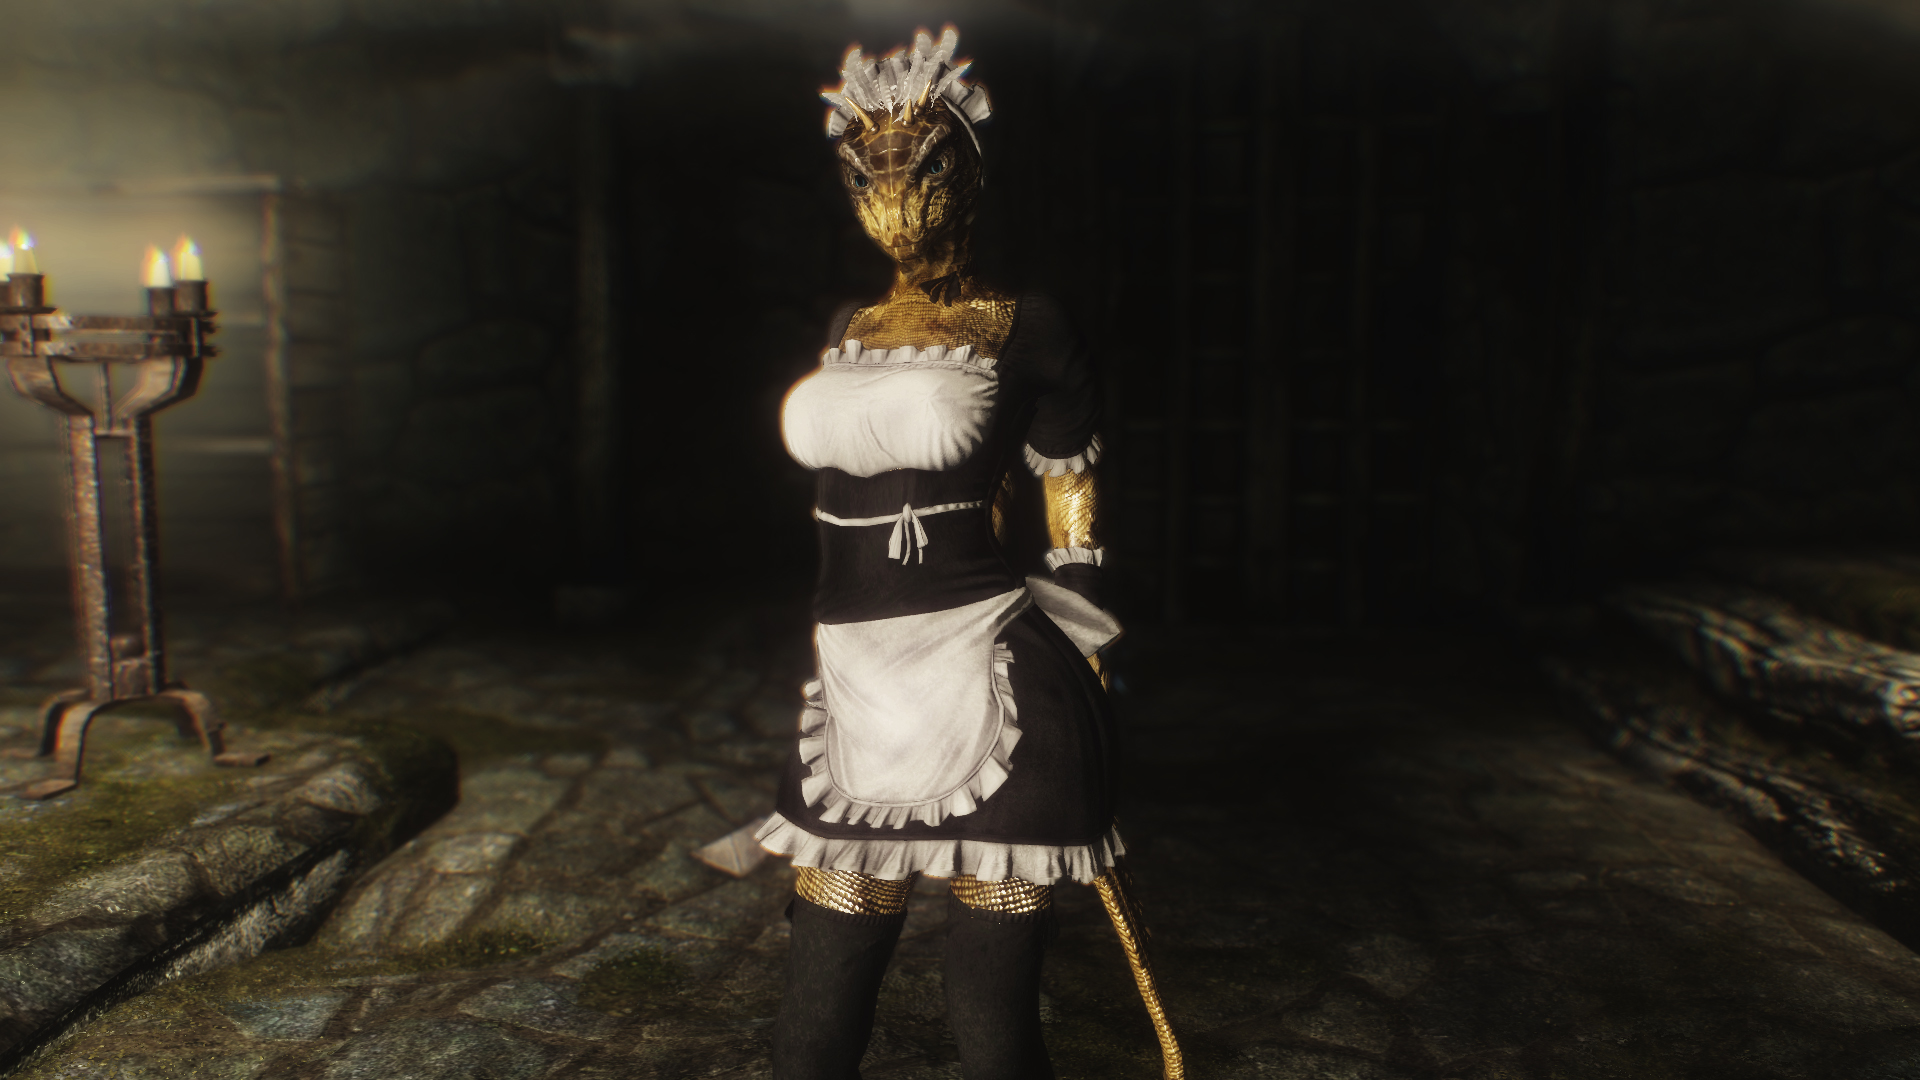 Proposal/Poll] French maid outfit to be Added to the Crown store or